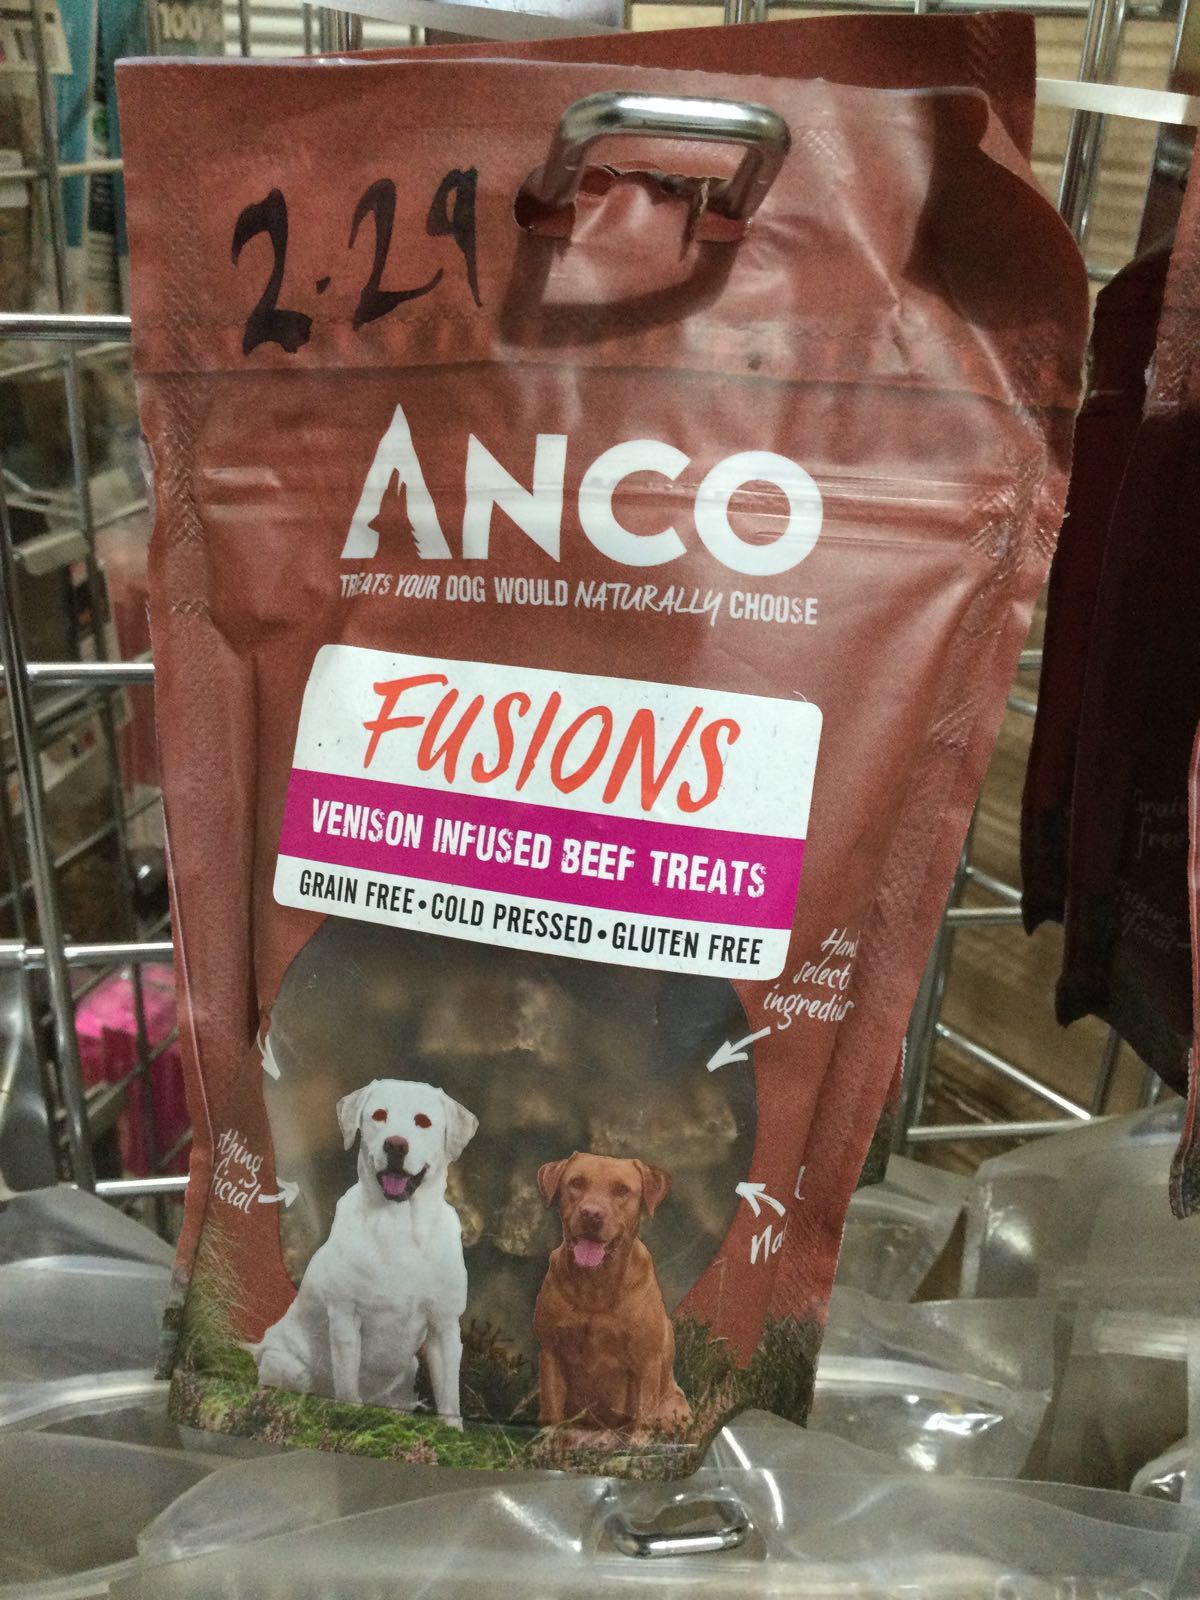 Anco Fusions- Venison Infused Beef Treats